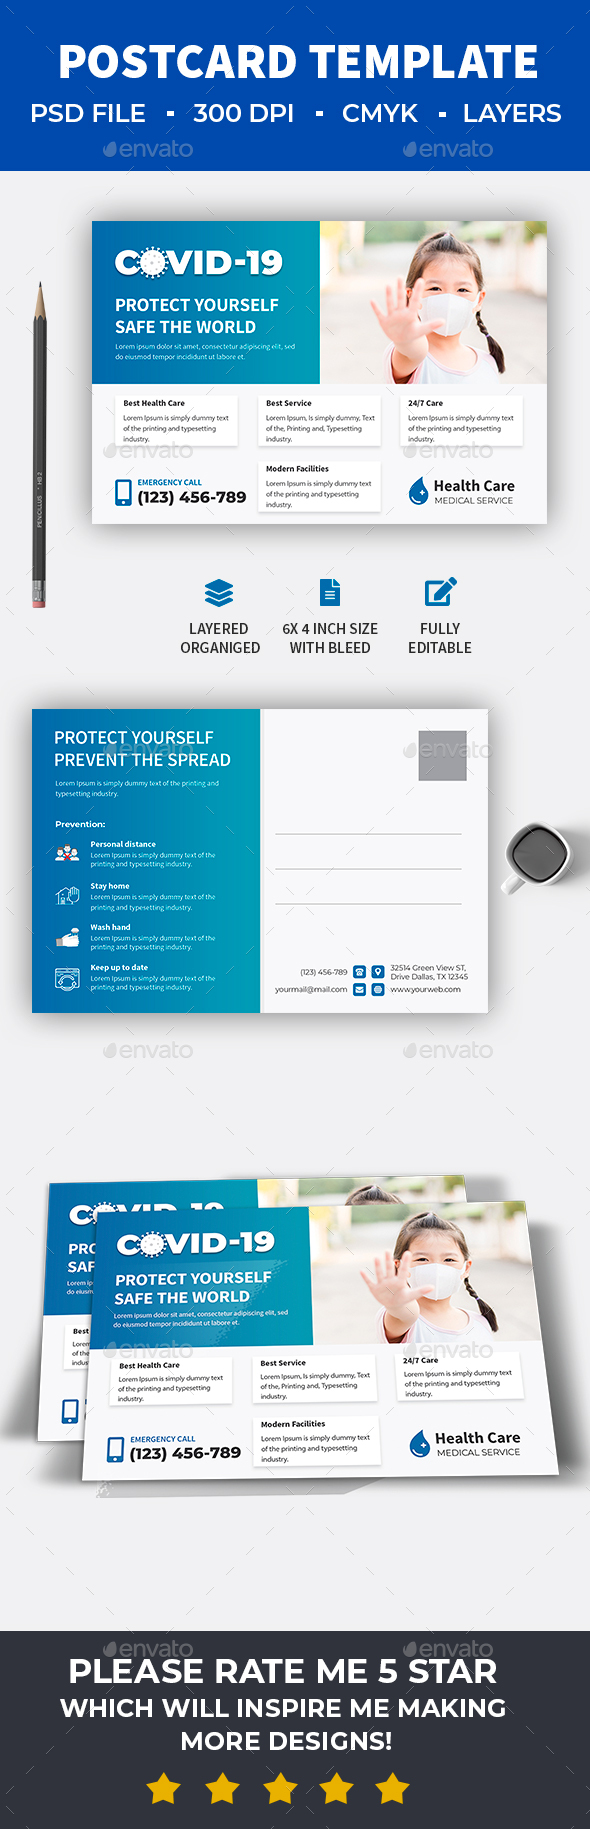 Covid-19 Health Care Postcard Template